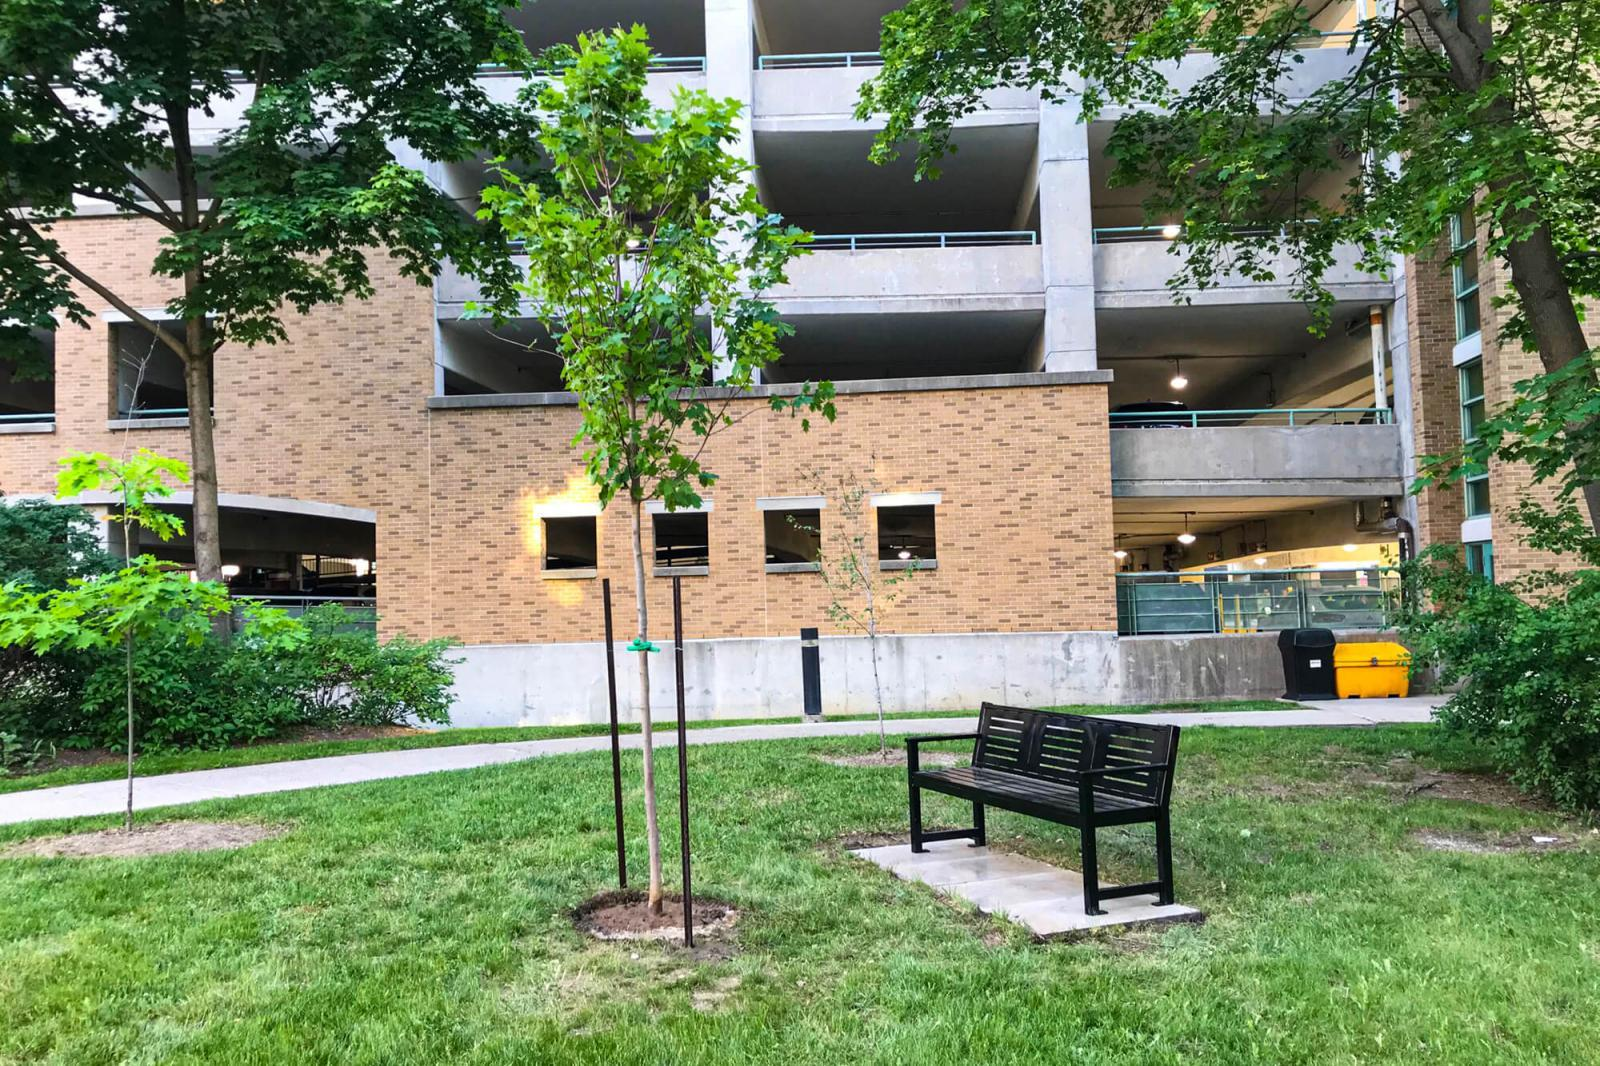 The first installation of 1bench1tree took place at Sunnybrook Hosptial in June 2021.